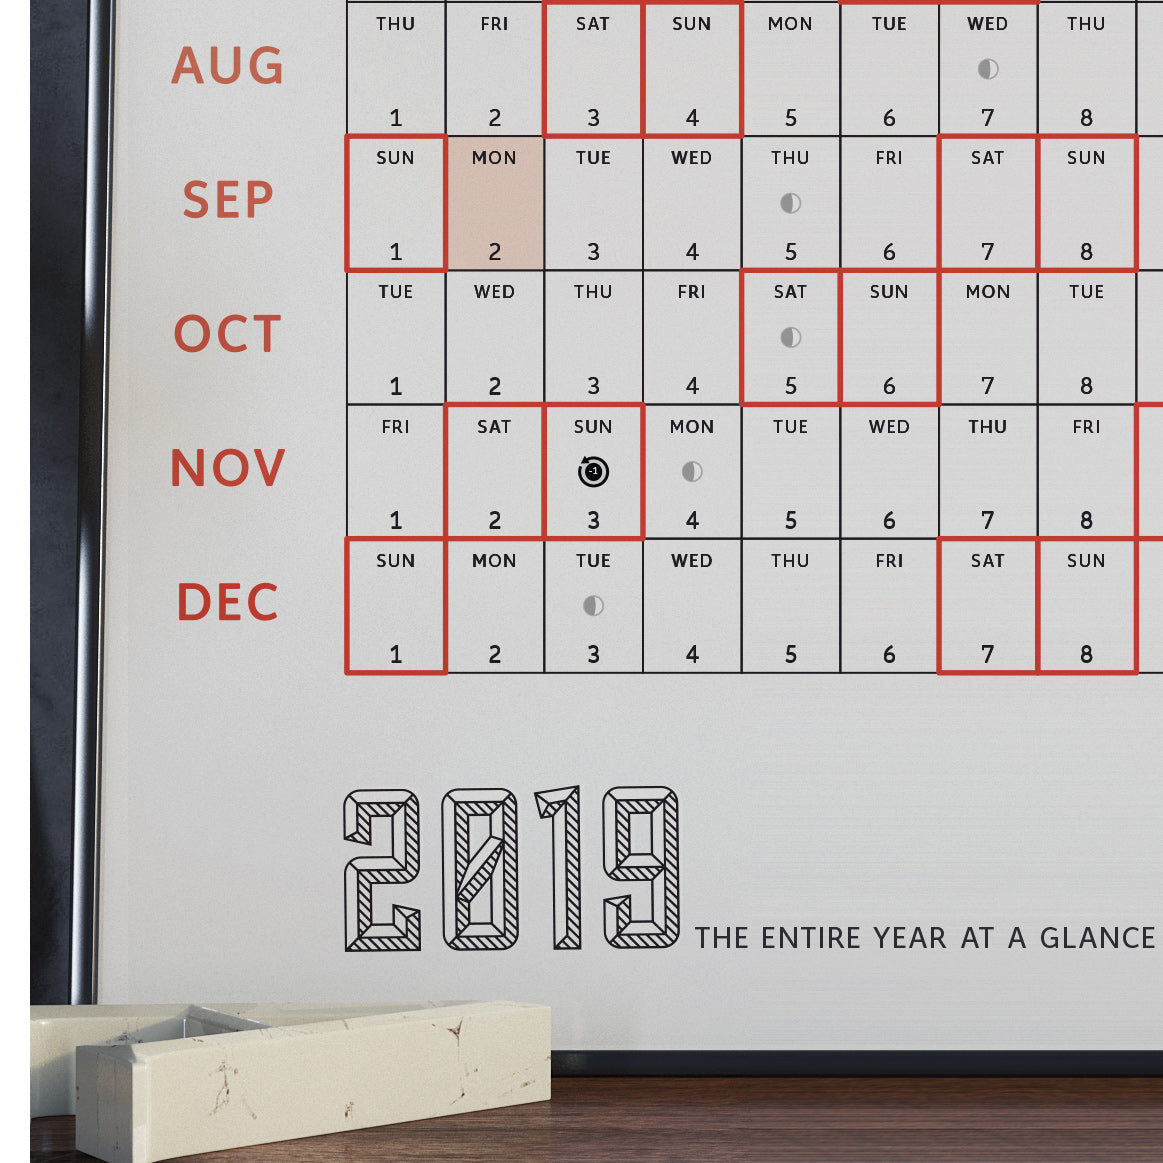 2019 Calendar: A Map of the Entire Year (Limited Edition)